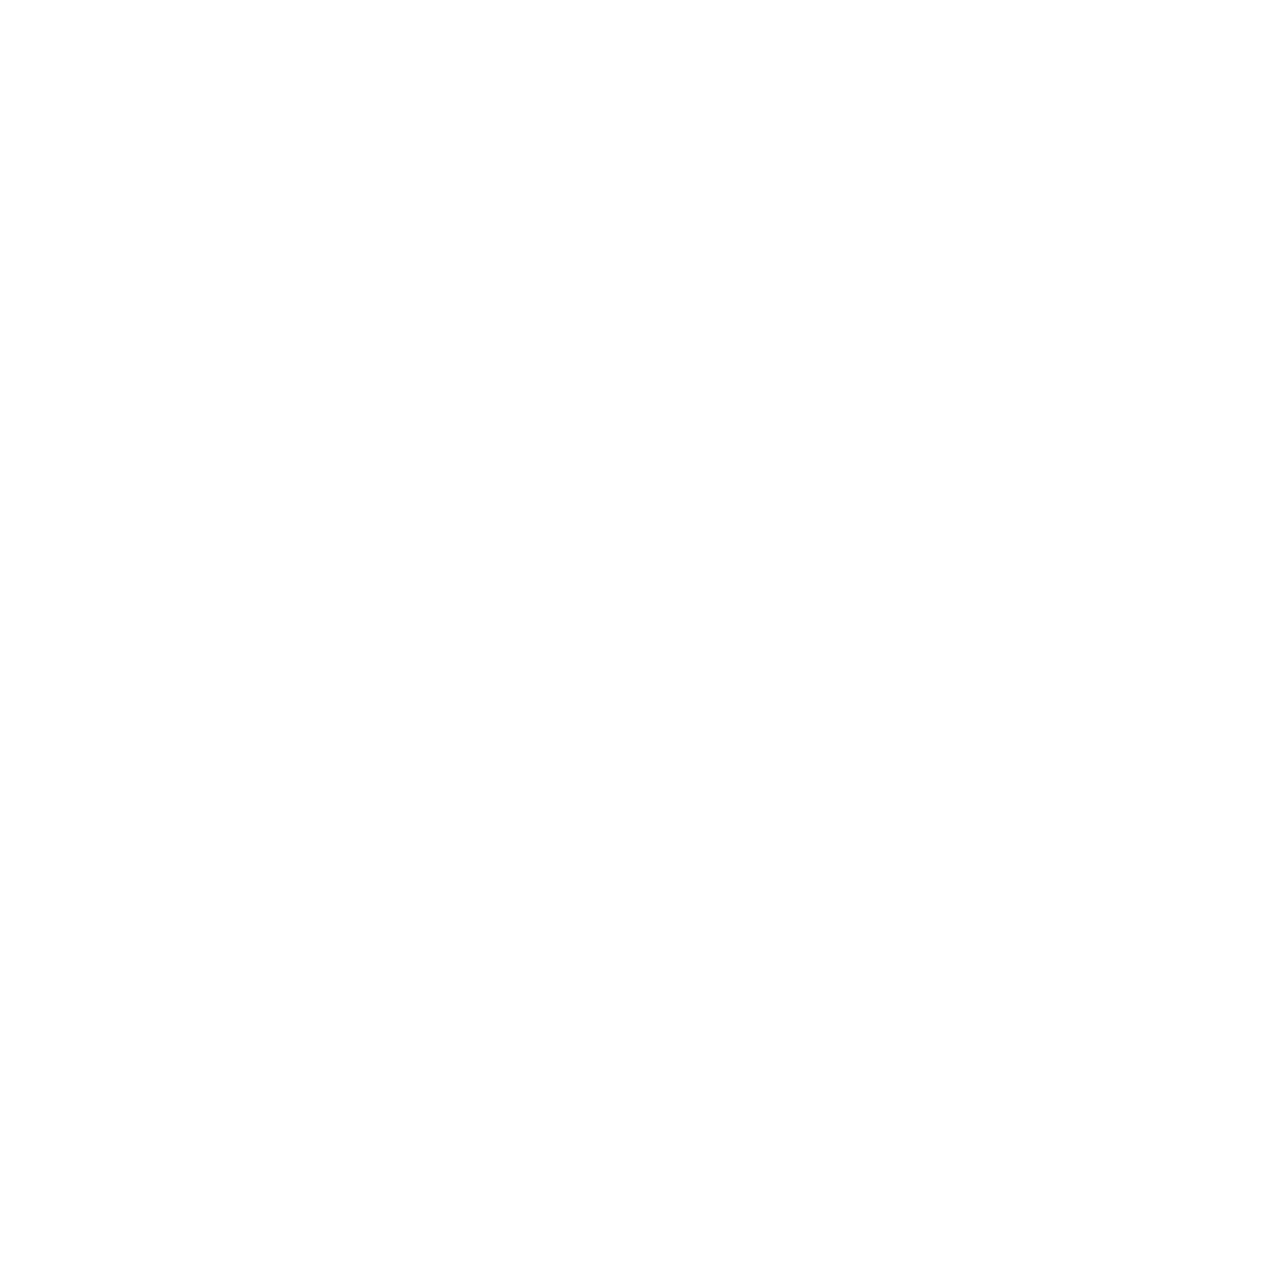 Engineer clipart computer repair. Infinite concepts your business